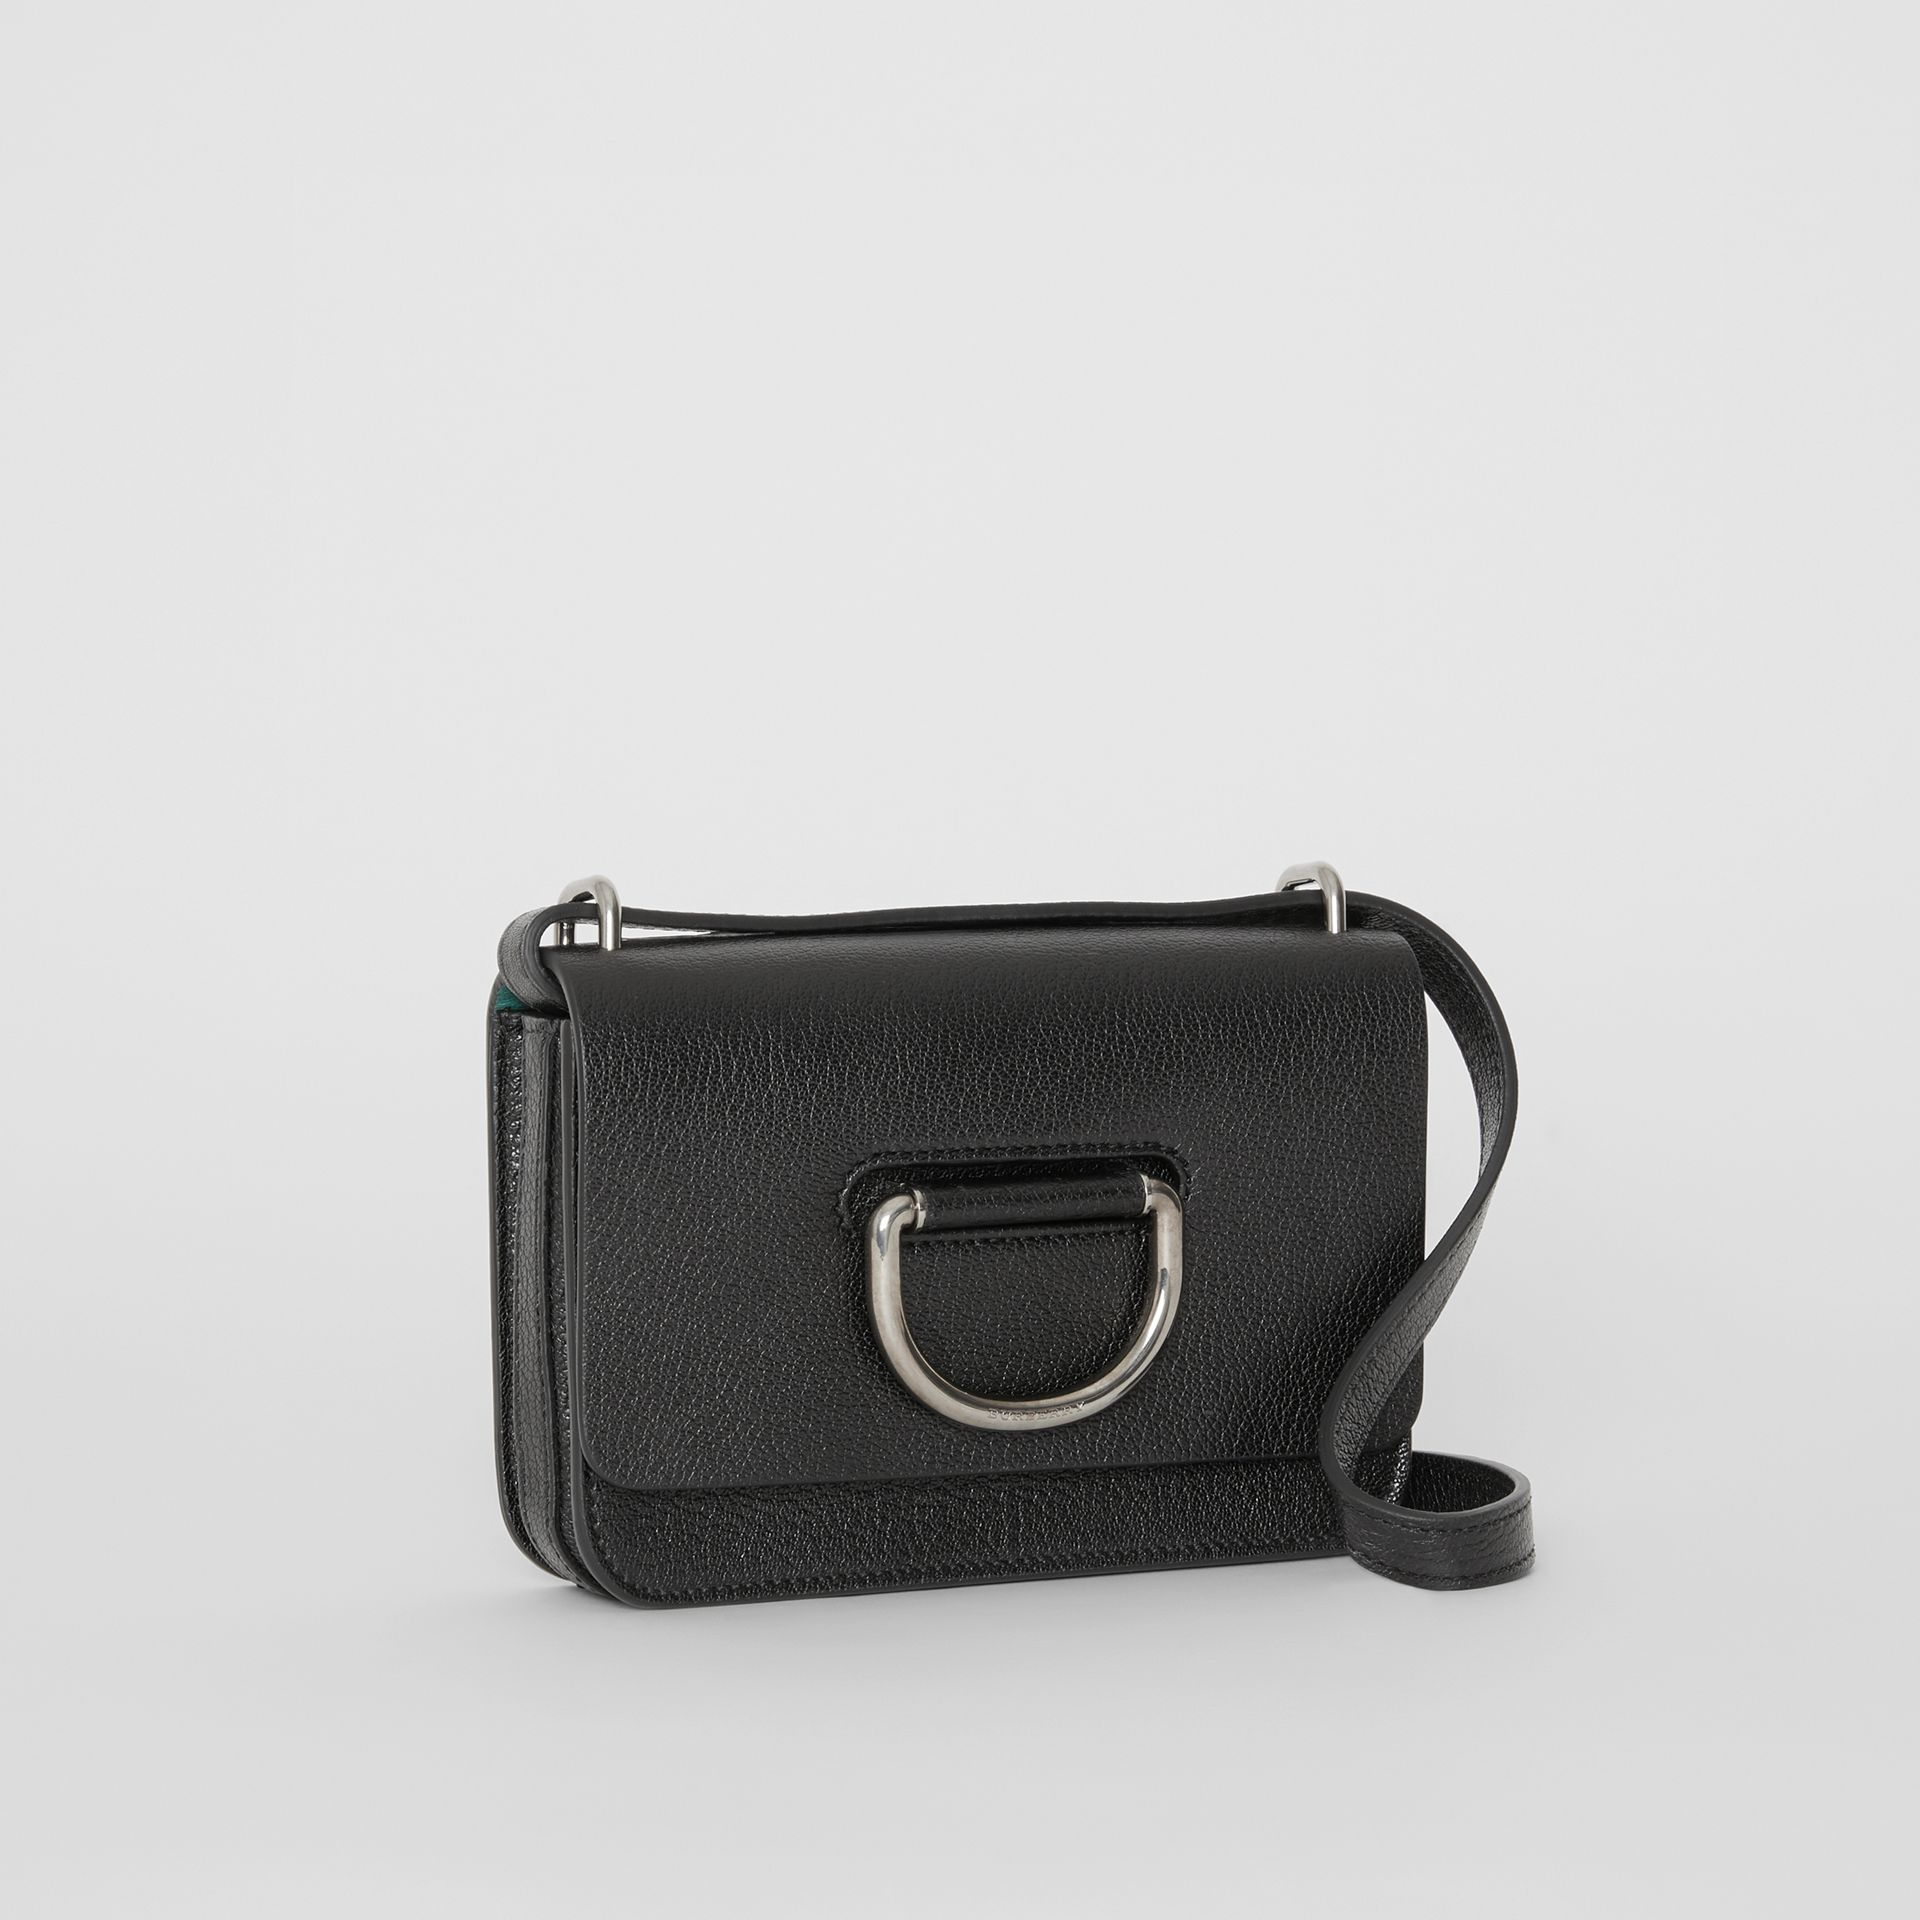 Borsa The D-ring mini in pelle (Nero) - Donna | Burberry - immagine della galleria 6